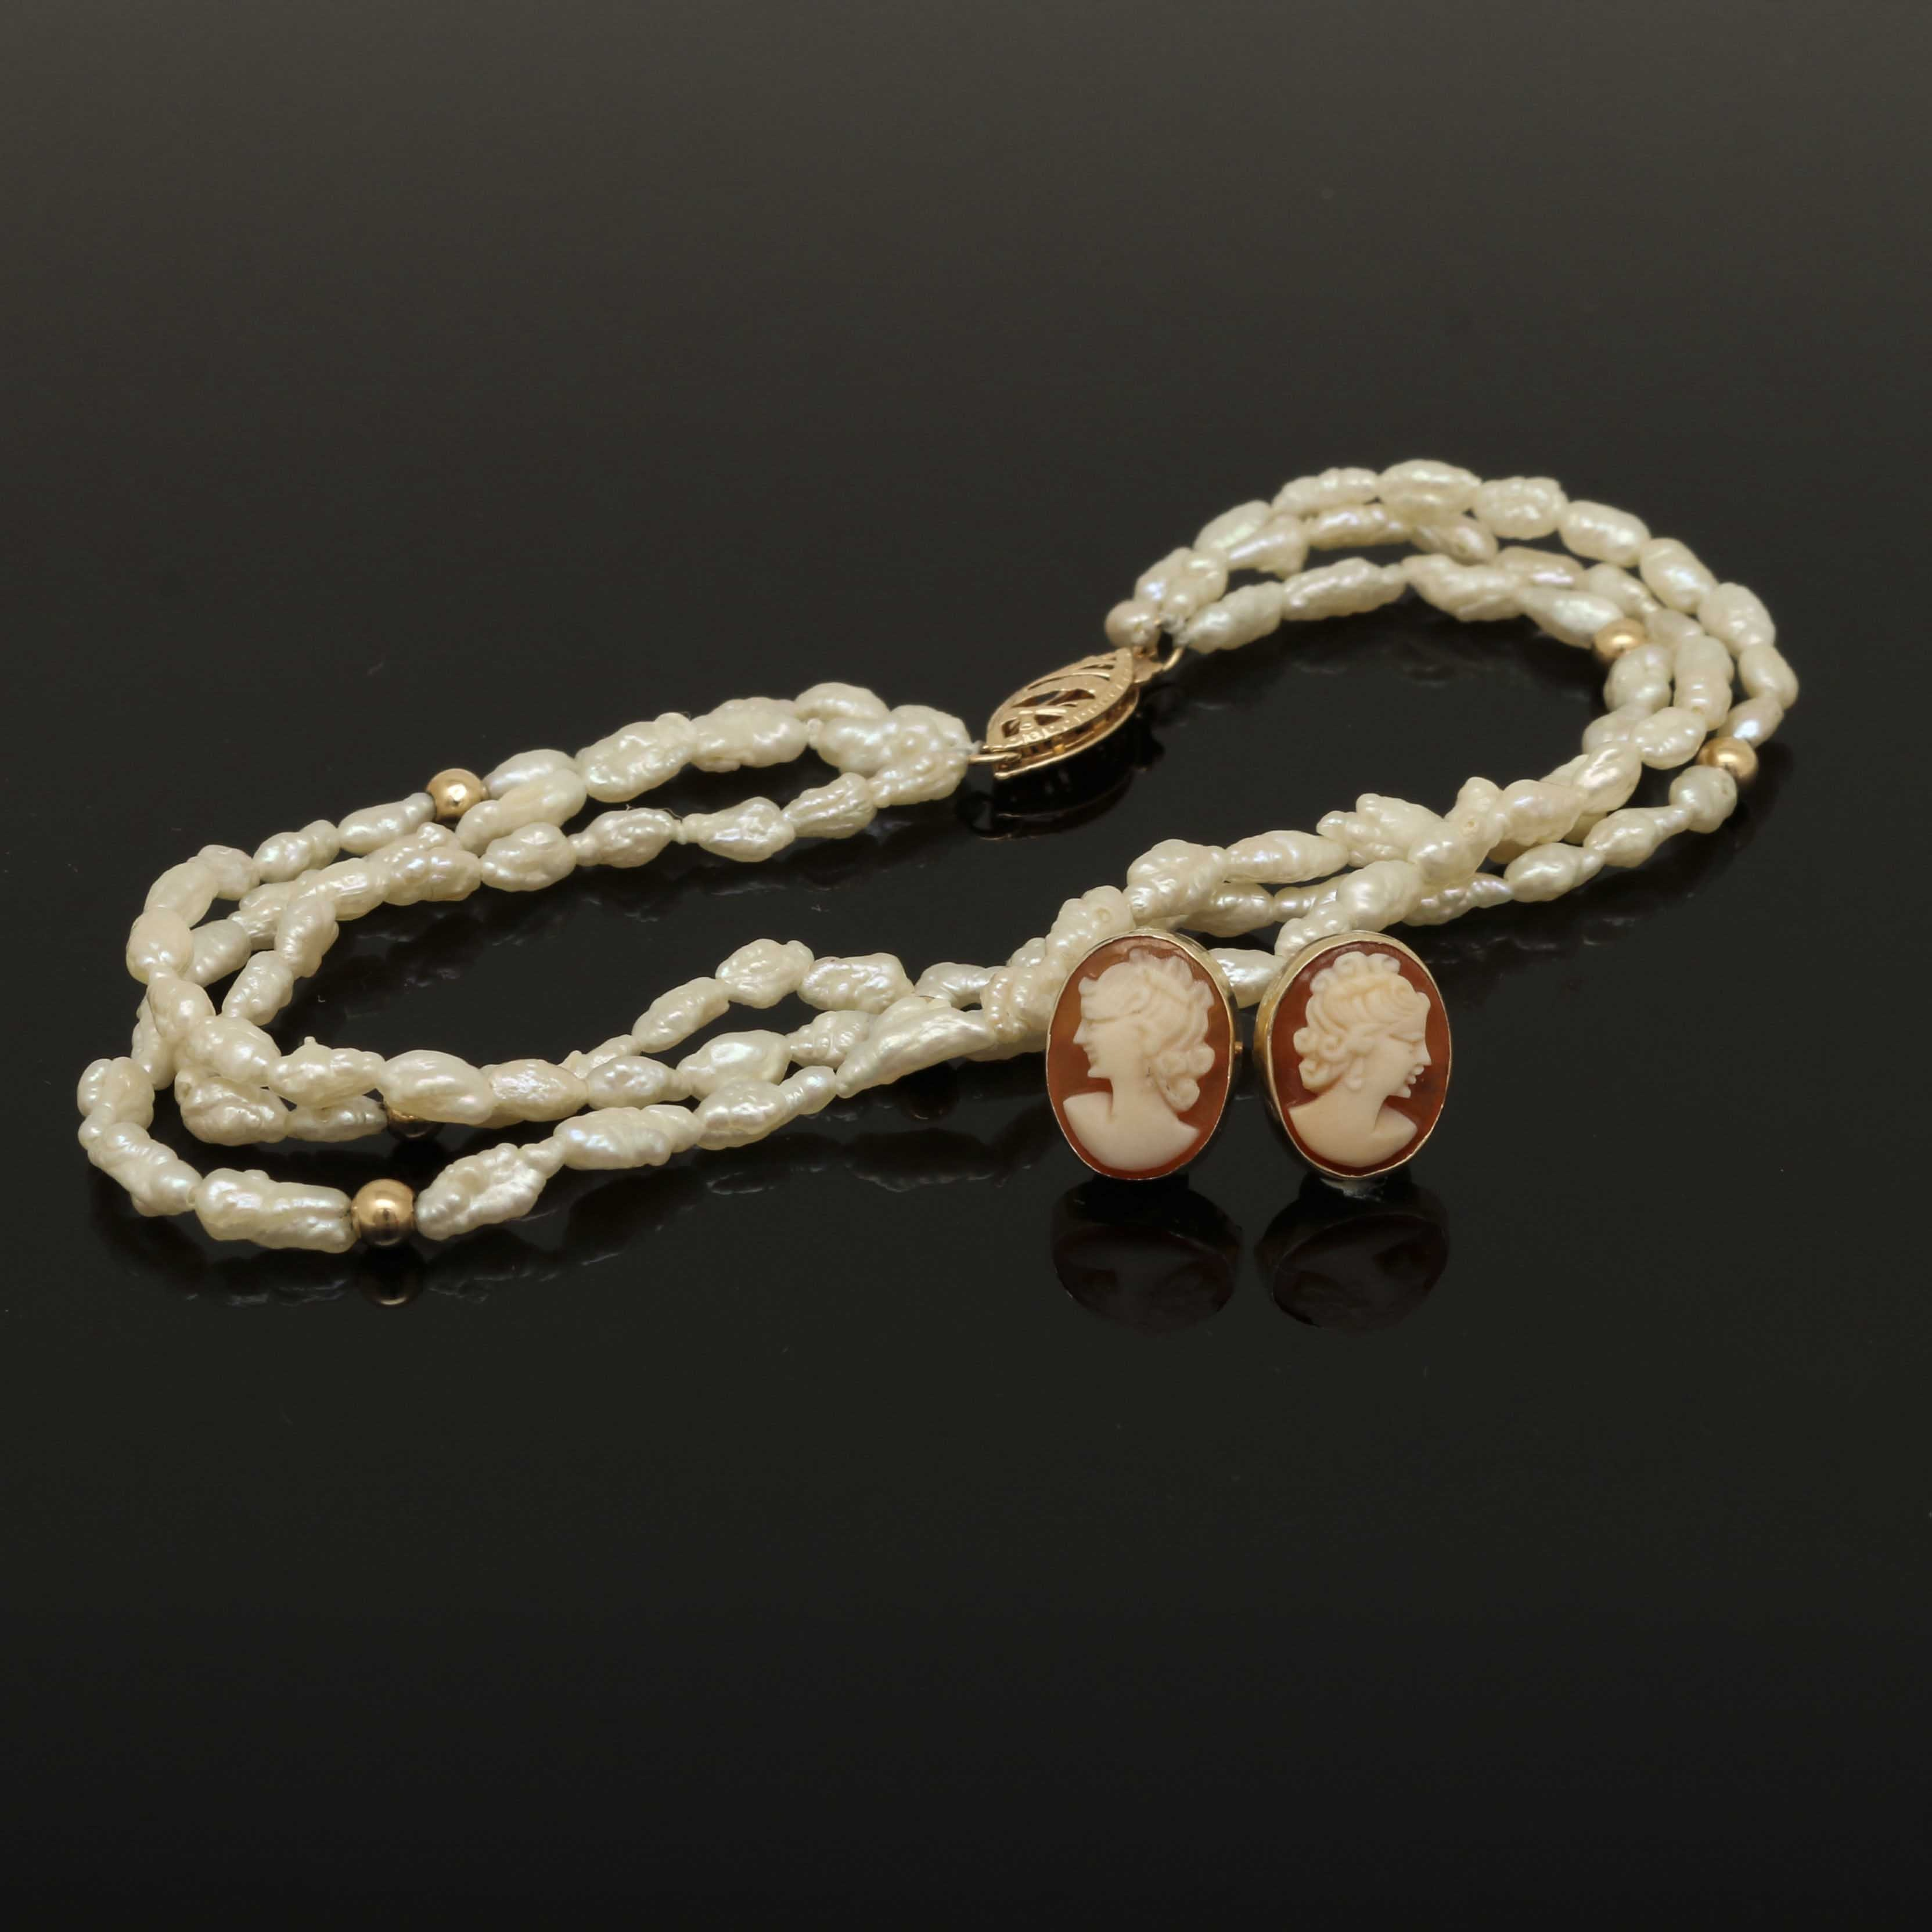 14K Yellow Gold Cameo Earrings and Cultured Pearl Bracelet